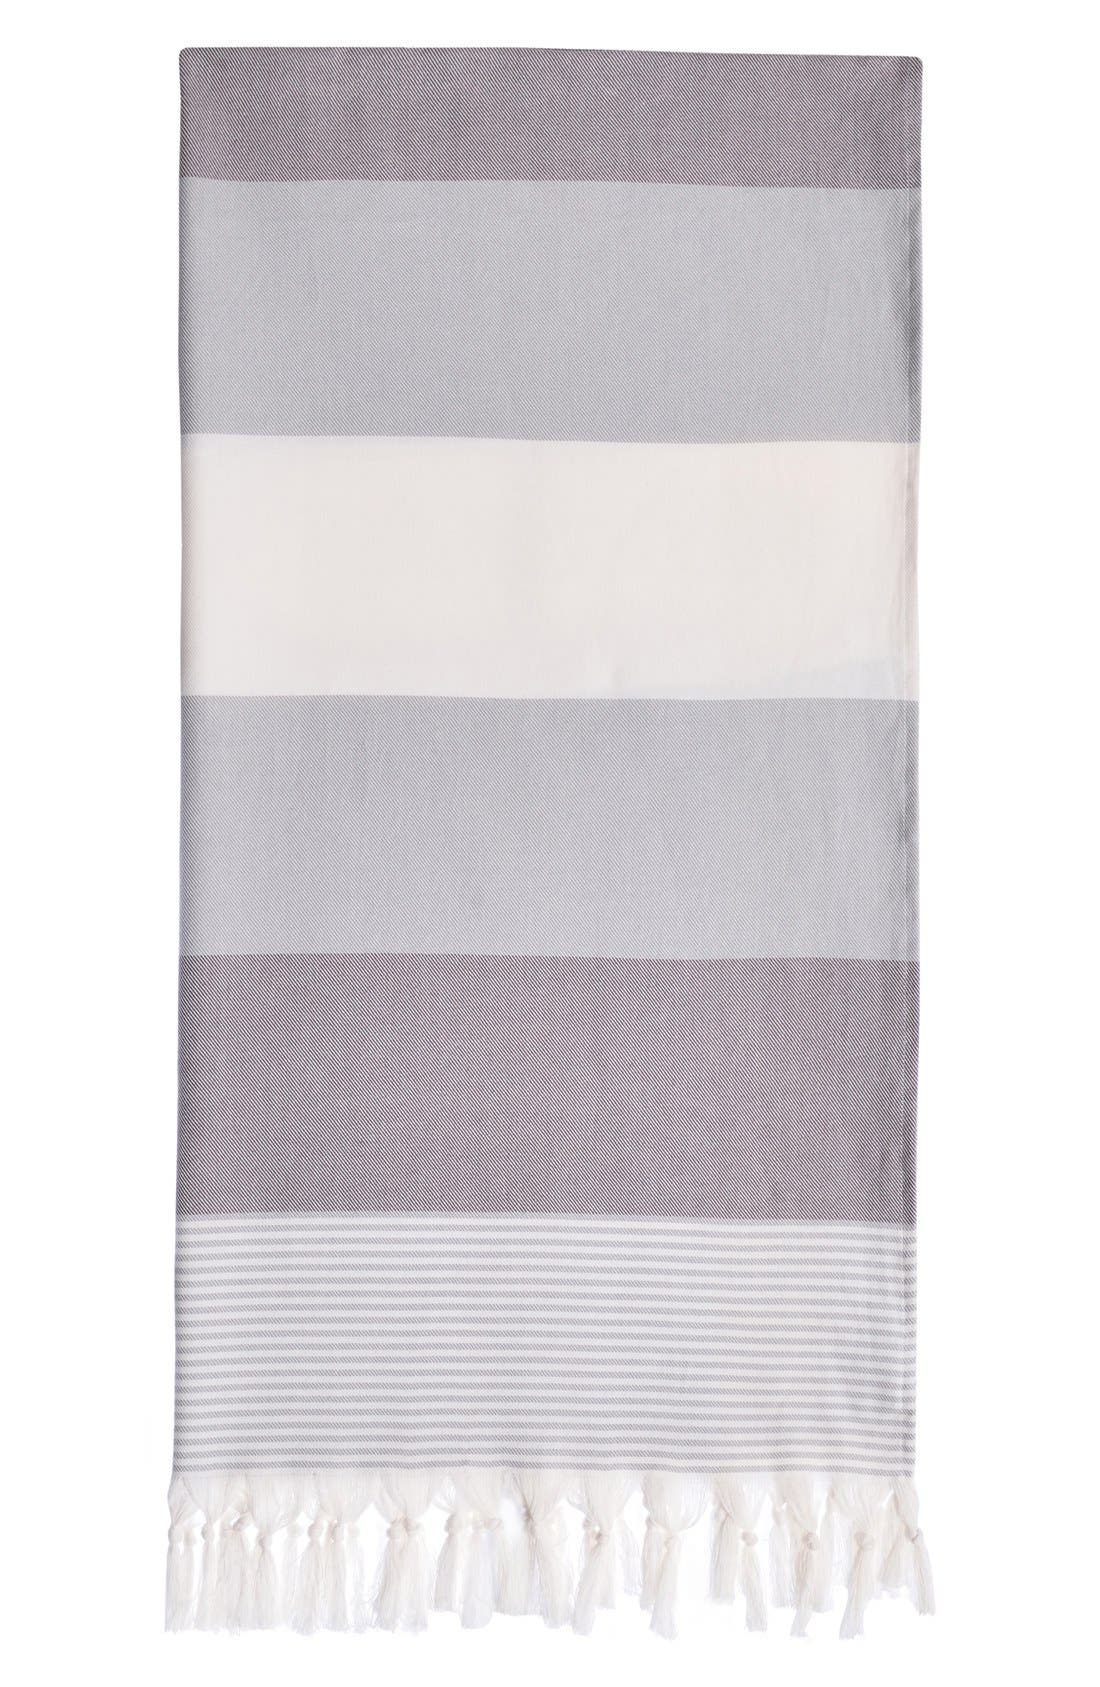 Main Image - Linum Home Textiles 'Sea Waves' Turkish Pestemal Towel